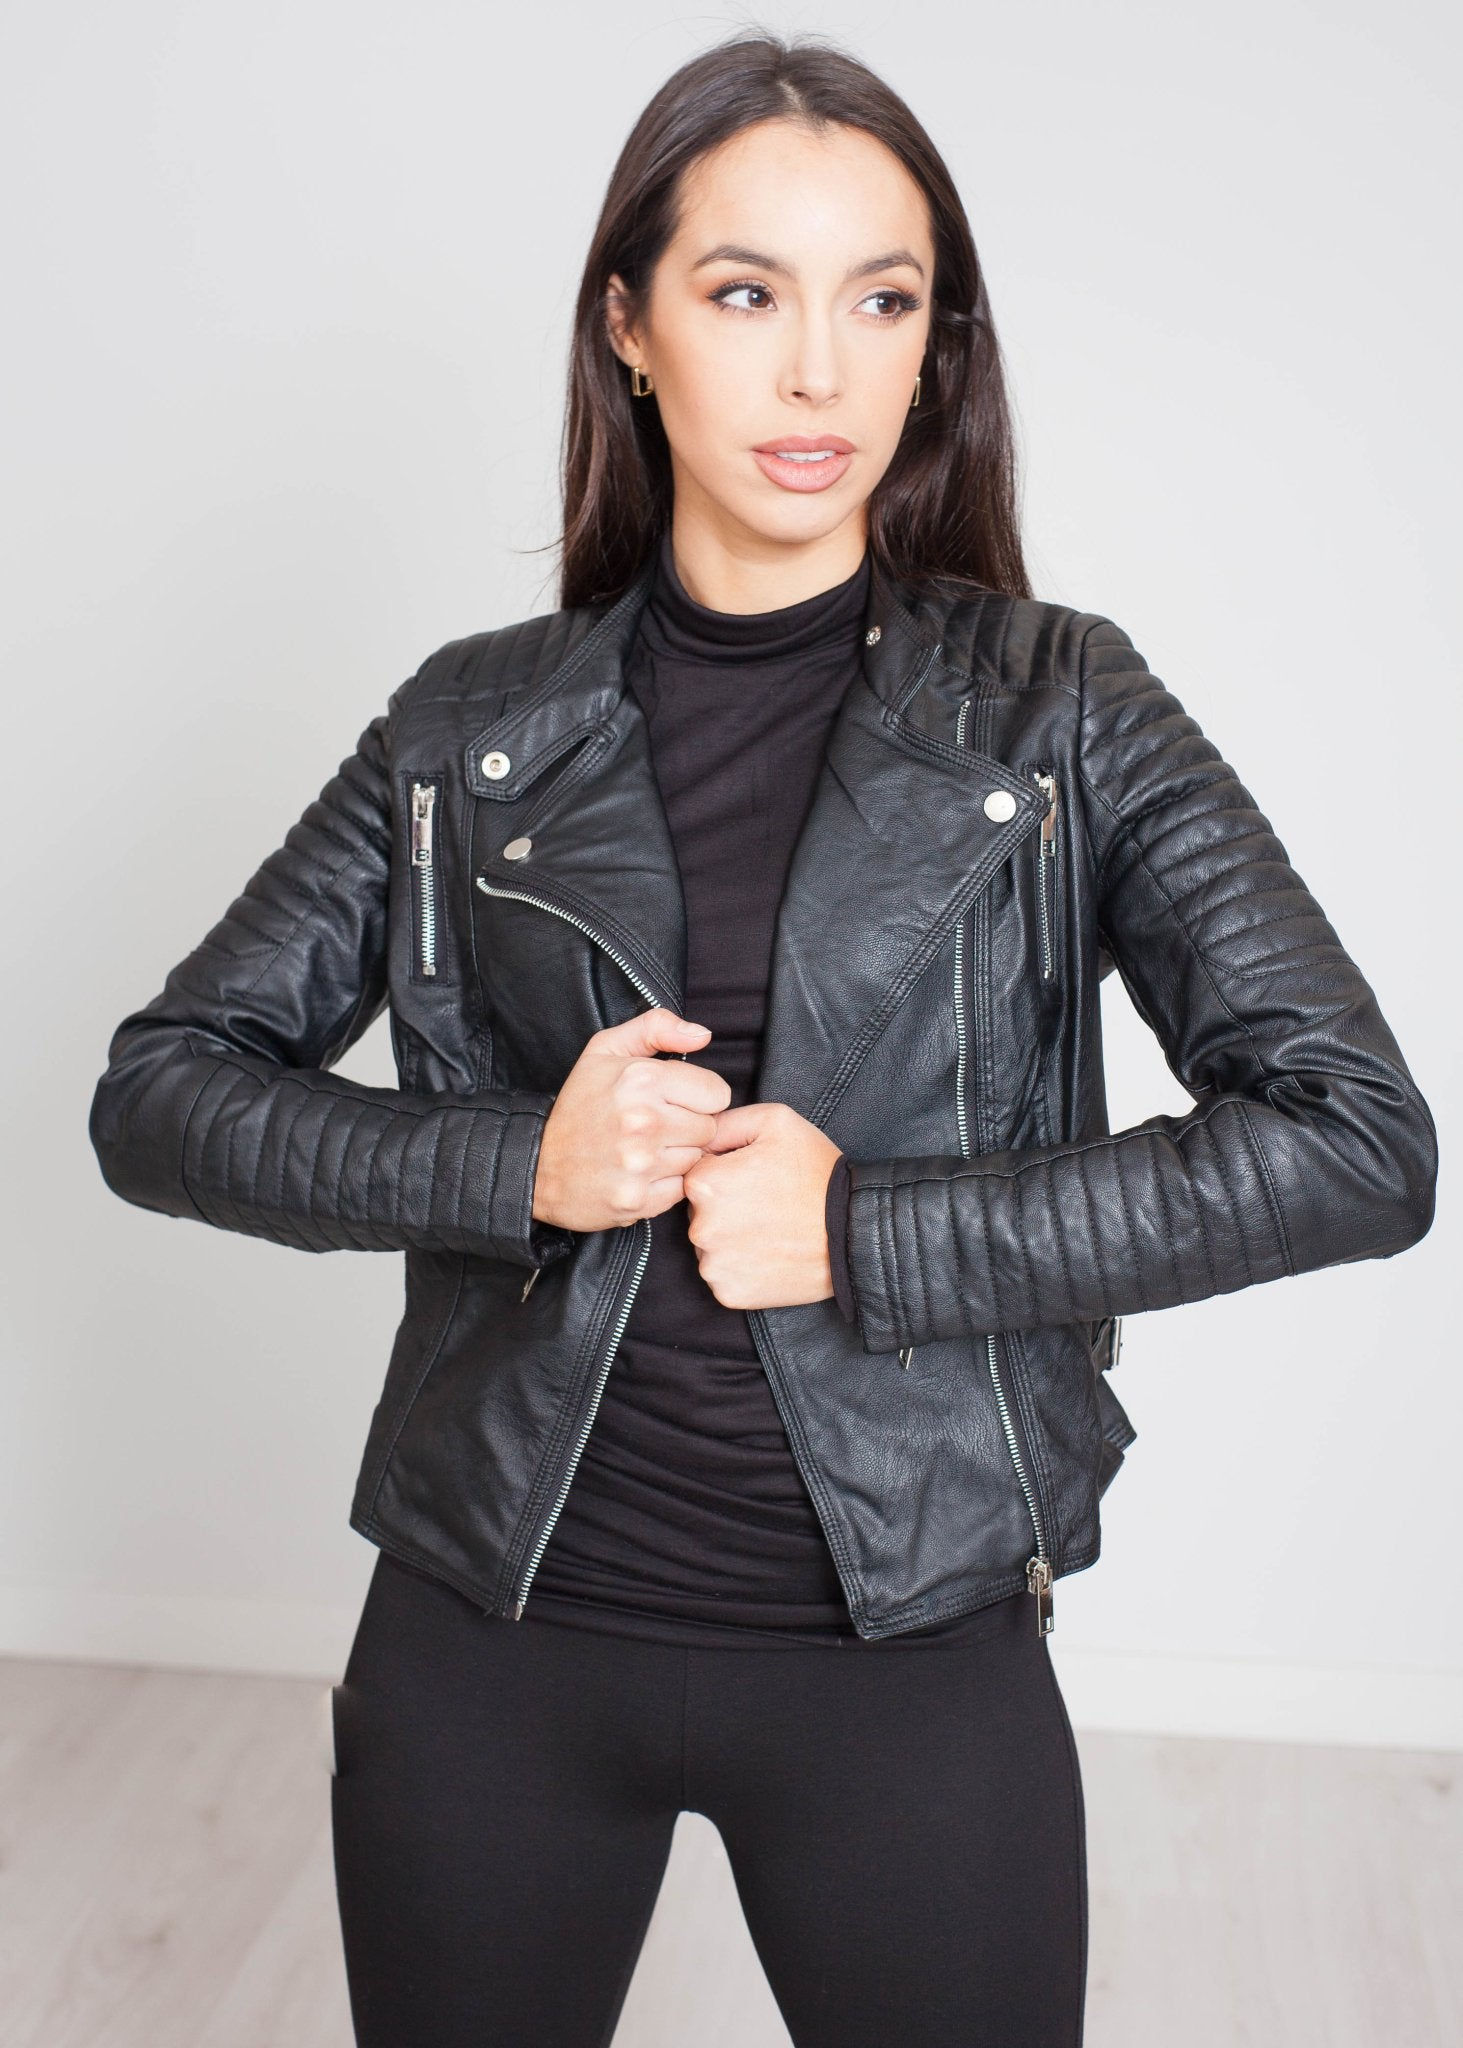 Yasmin Quilted Leather Jacket In Black - The Walk in Wardrobe